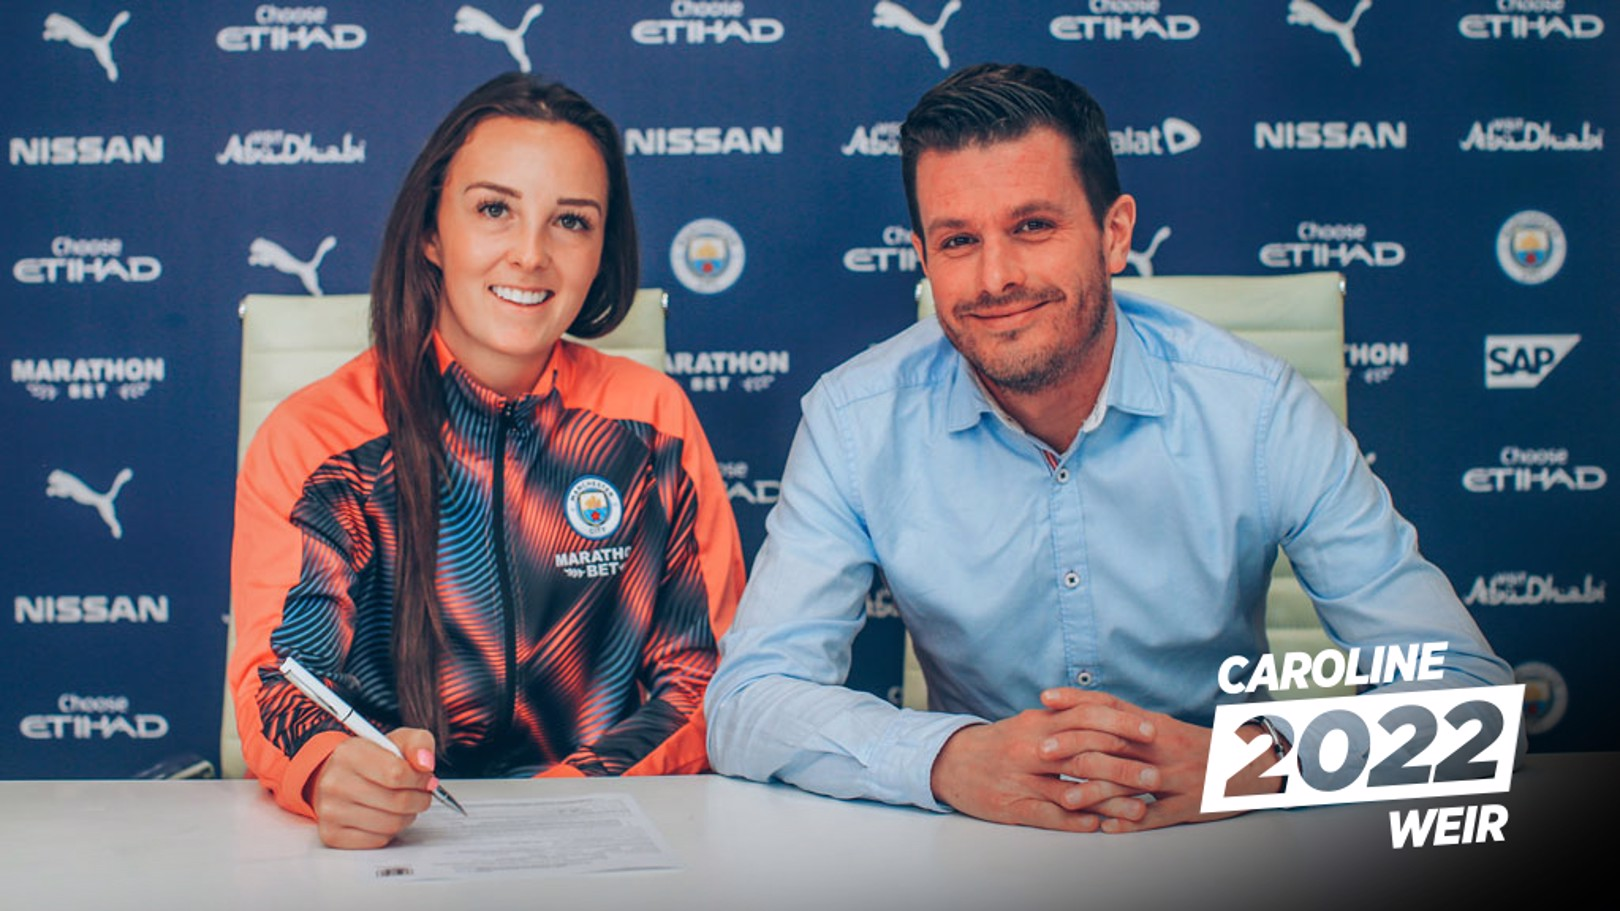 WONDERWEIR: Caroline Weir puts pen to paper on a new contract